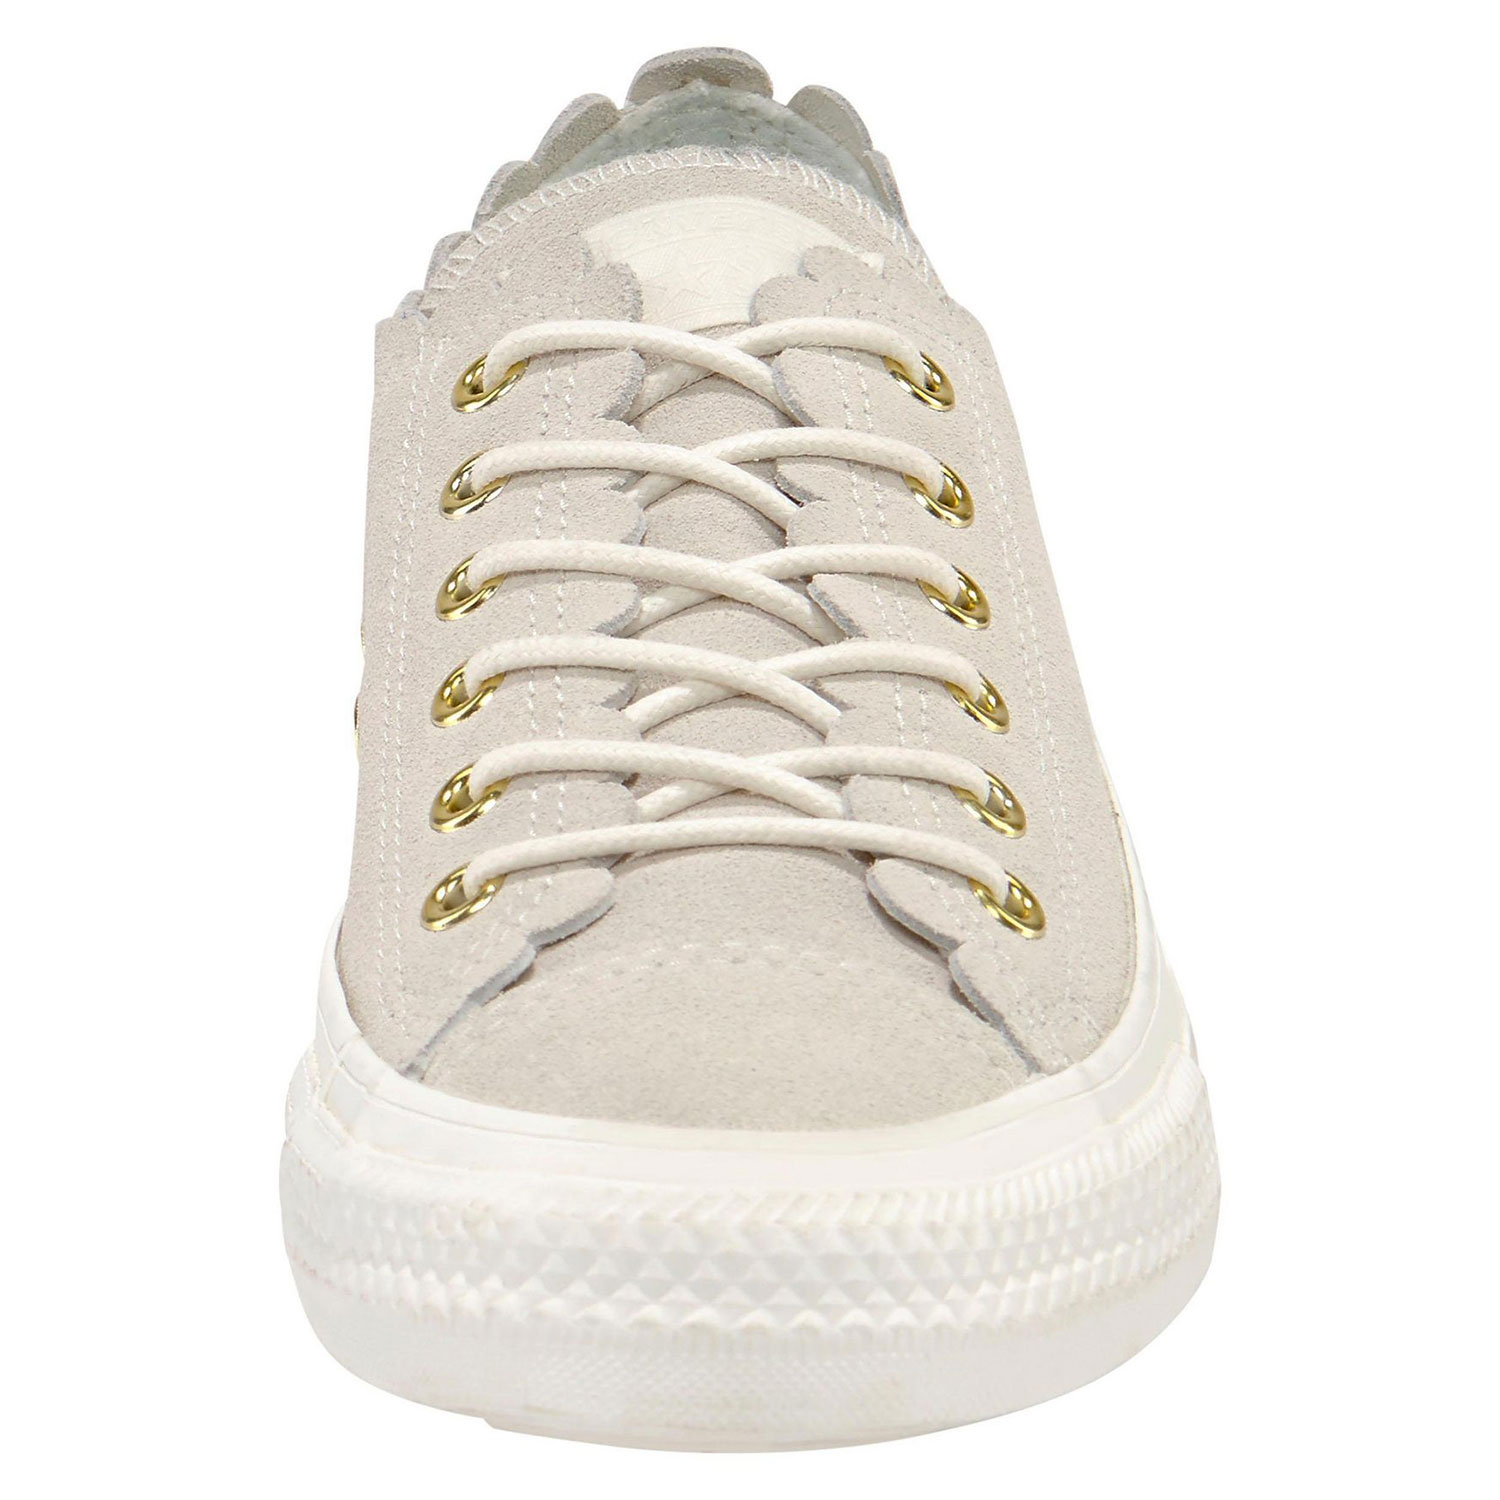 eb17c2ceef038 Converse CT AS OX Chuck Taylor All Star Leder grau gold 563418C – Bild 5